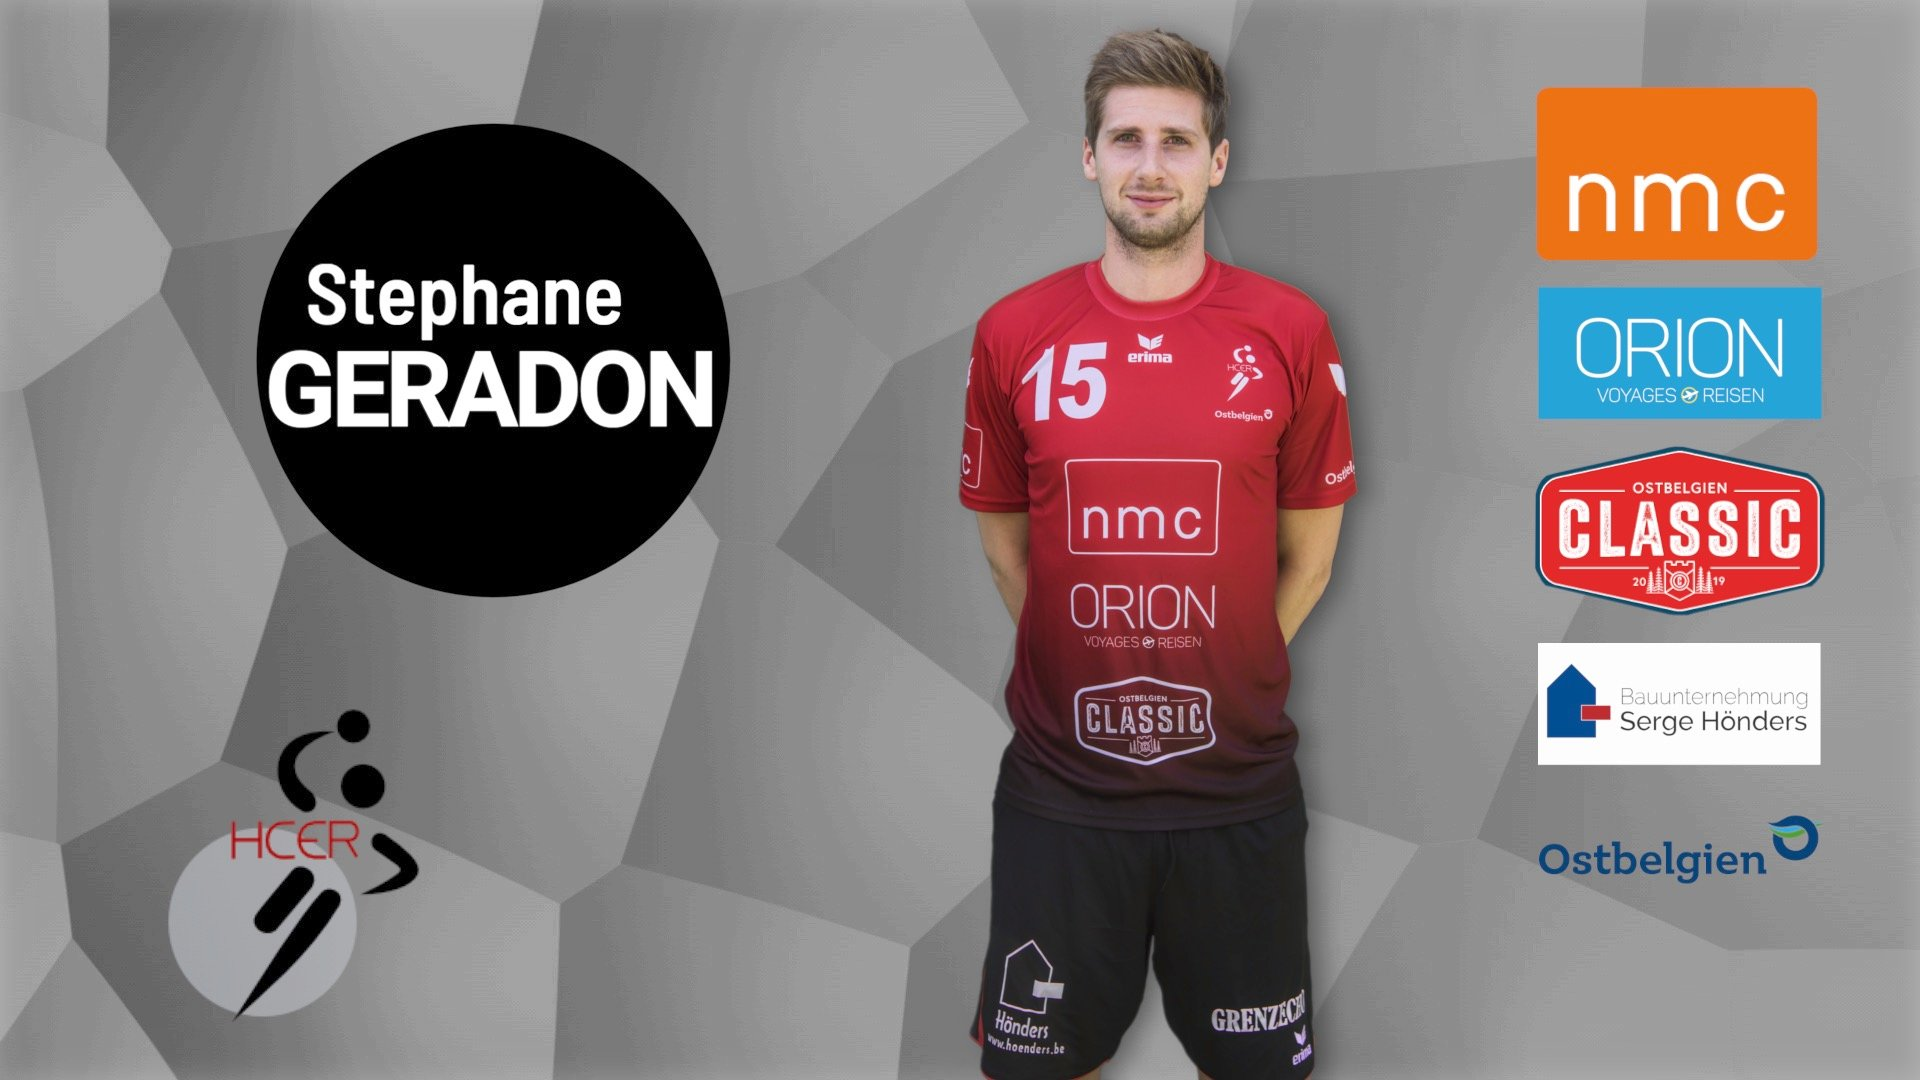 #15 Stephane Geradon